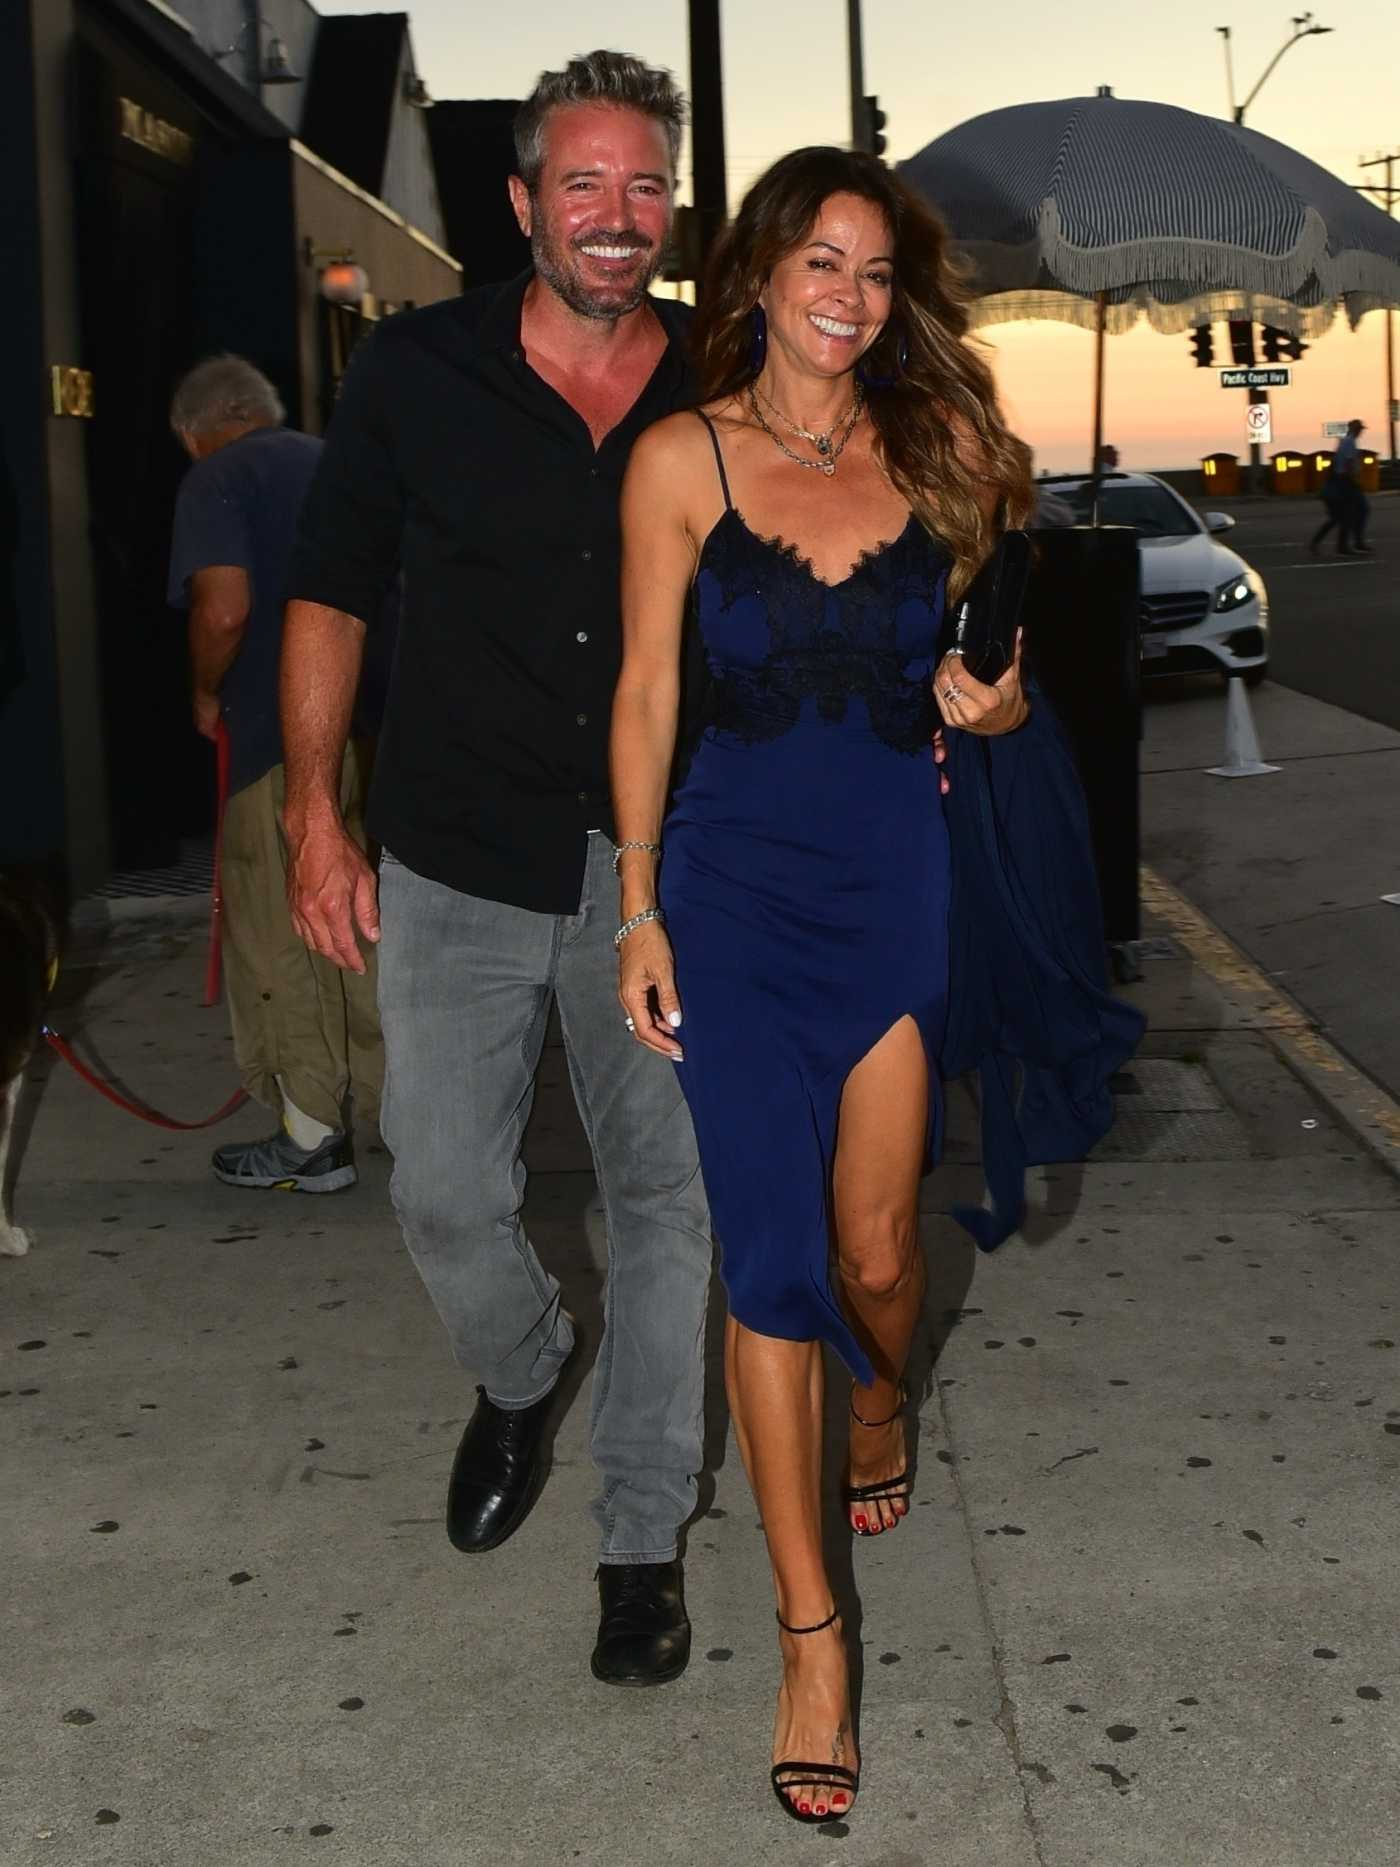 Brooke Burke in a Blue Dress Arrives at Giorgio Baldi Italian Restaurant in Santa Monica 08/20/2019